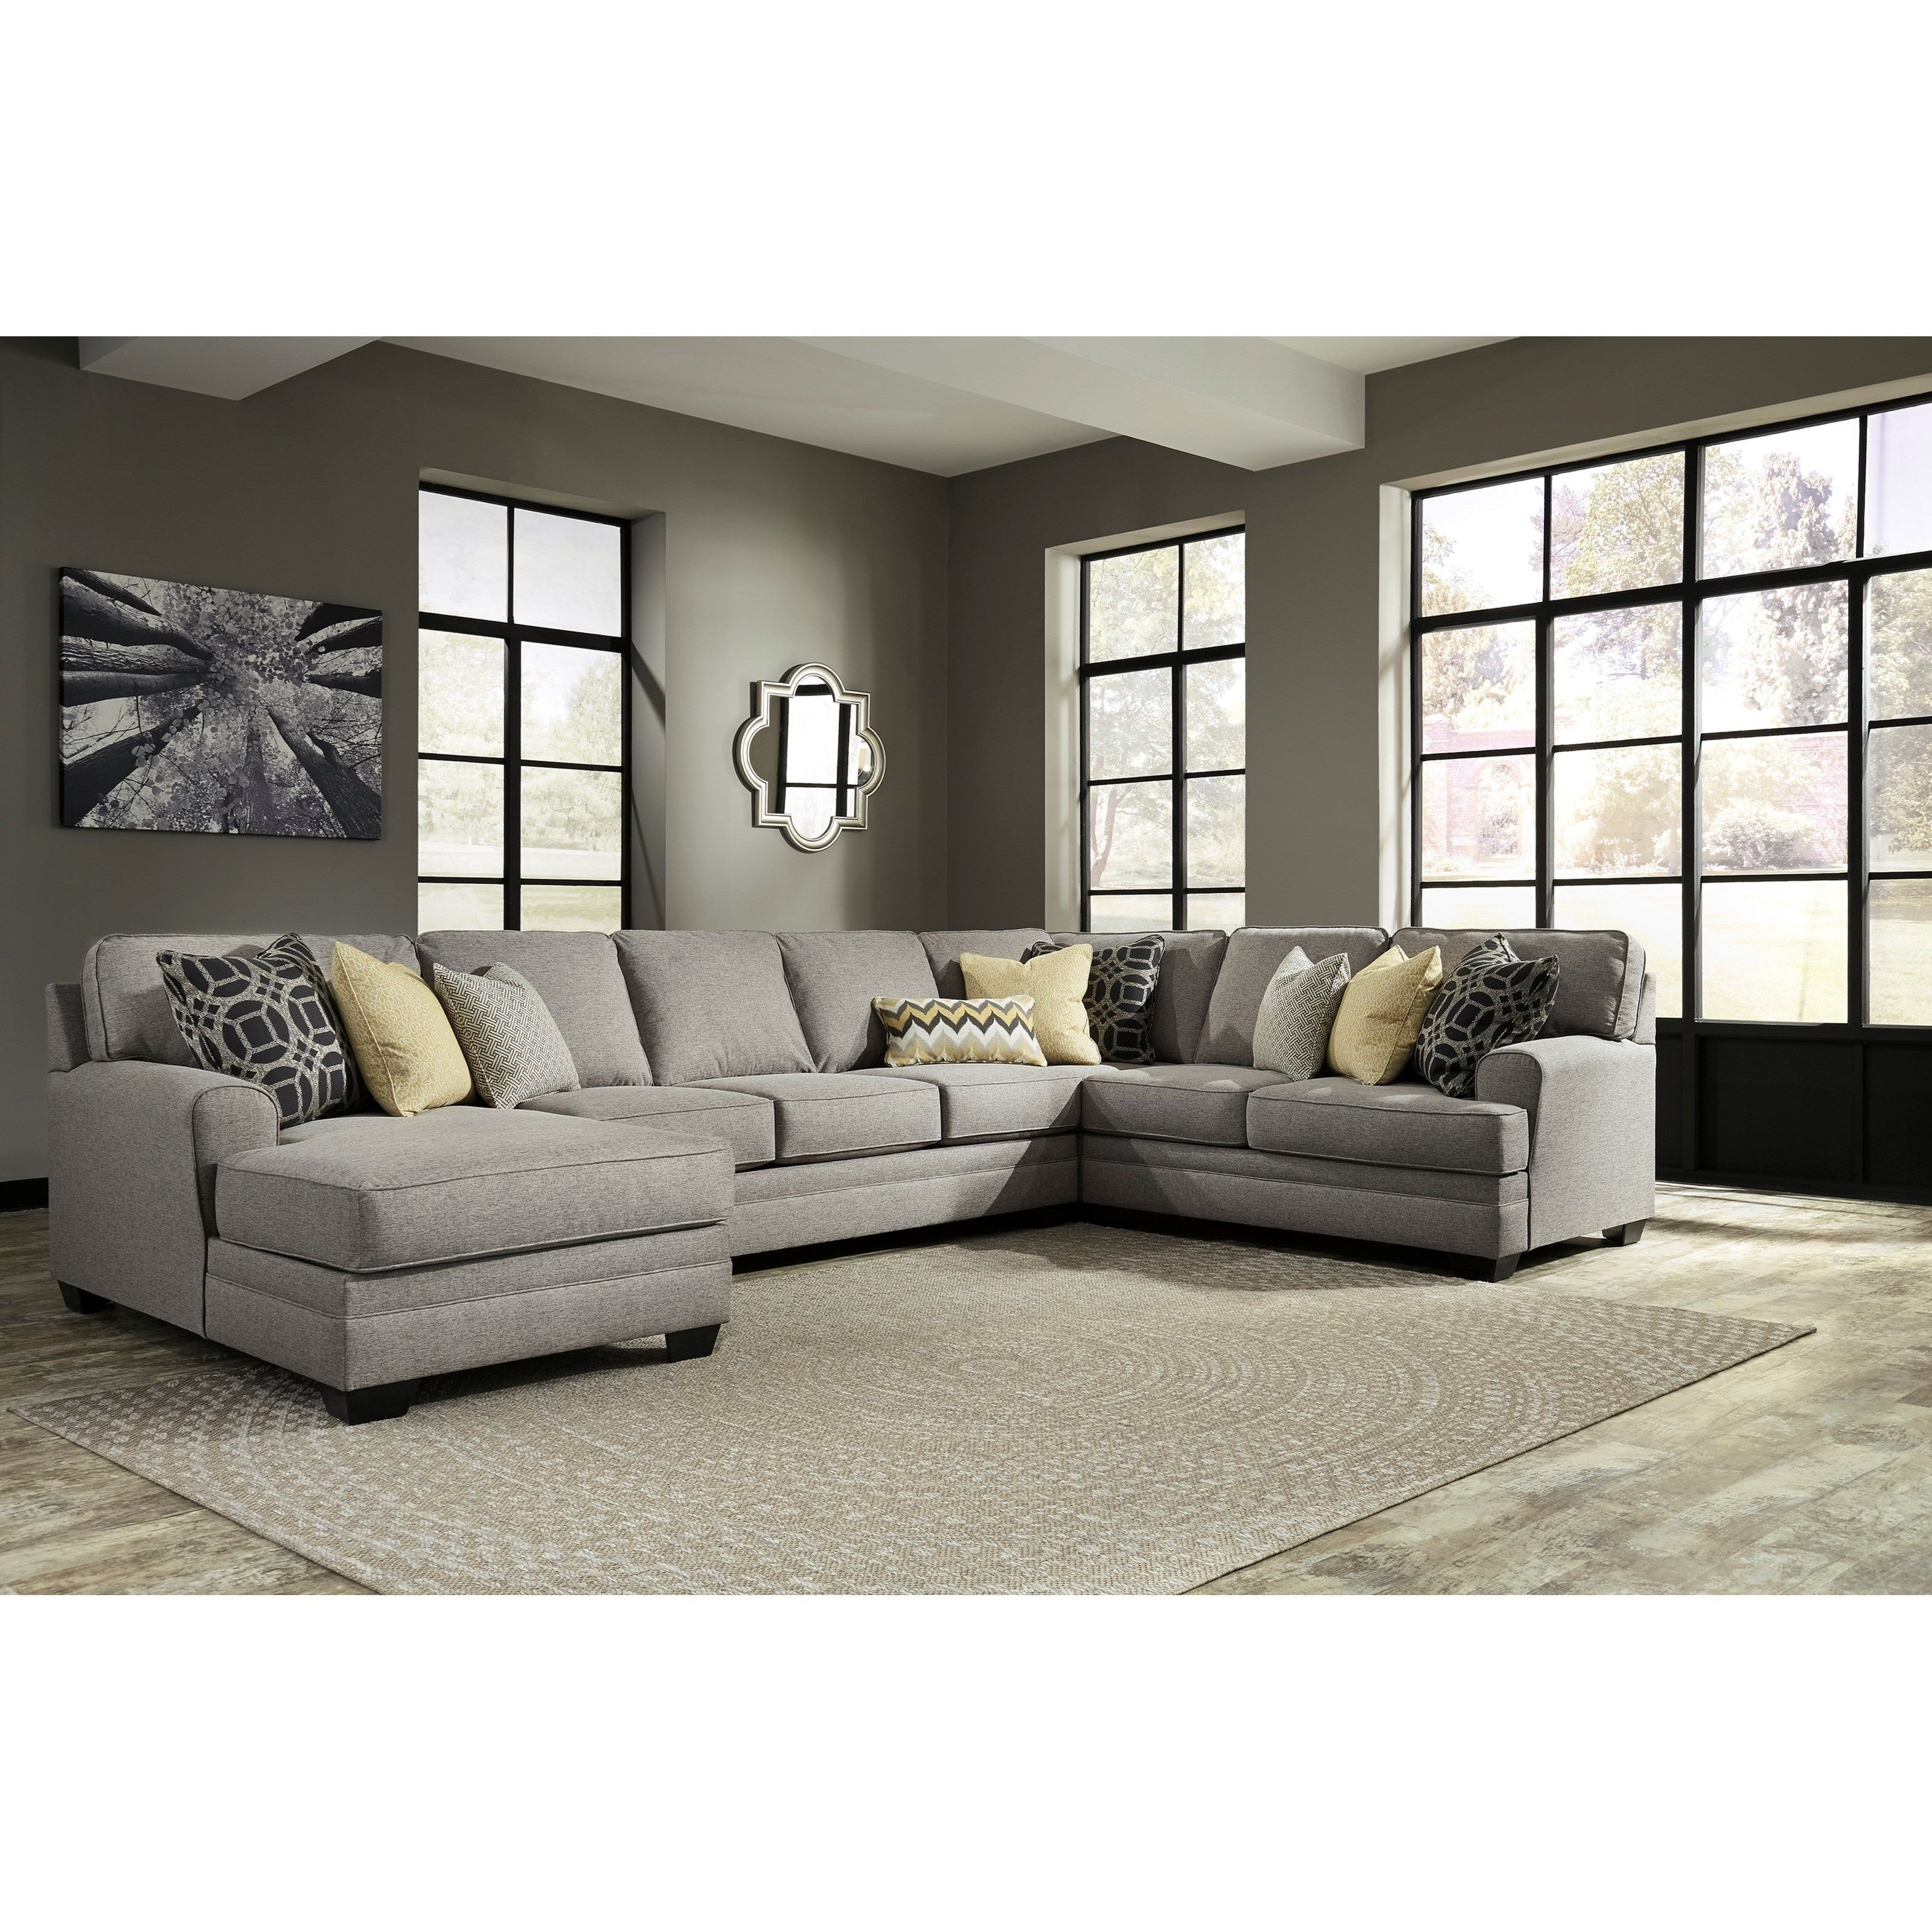 2017 Eau Claire Wi Sectional Sofas Intended For Contemporary 4 Piece Sectional With Chaise & Armless Sofa (View 1 of 15)